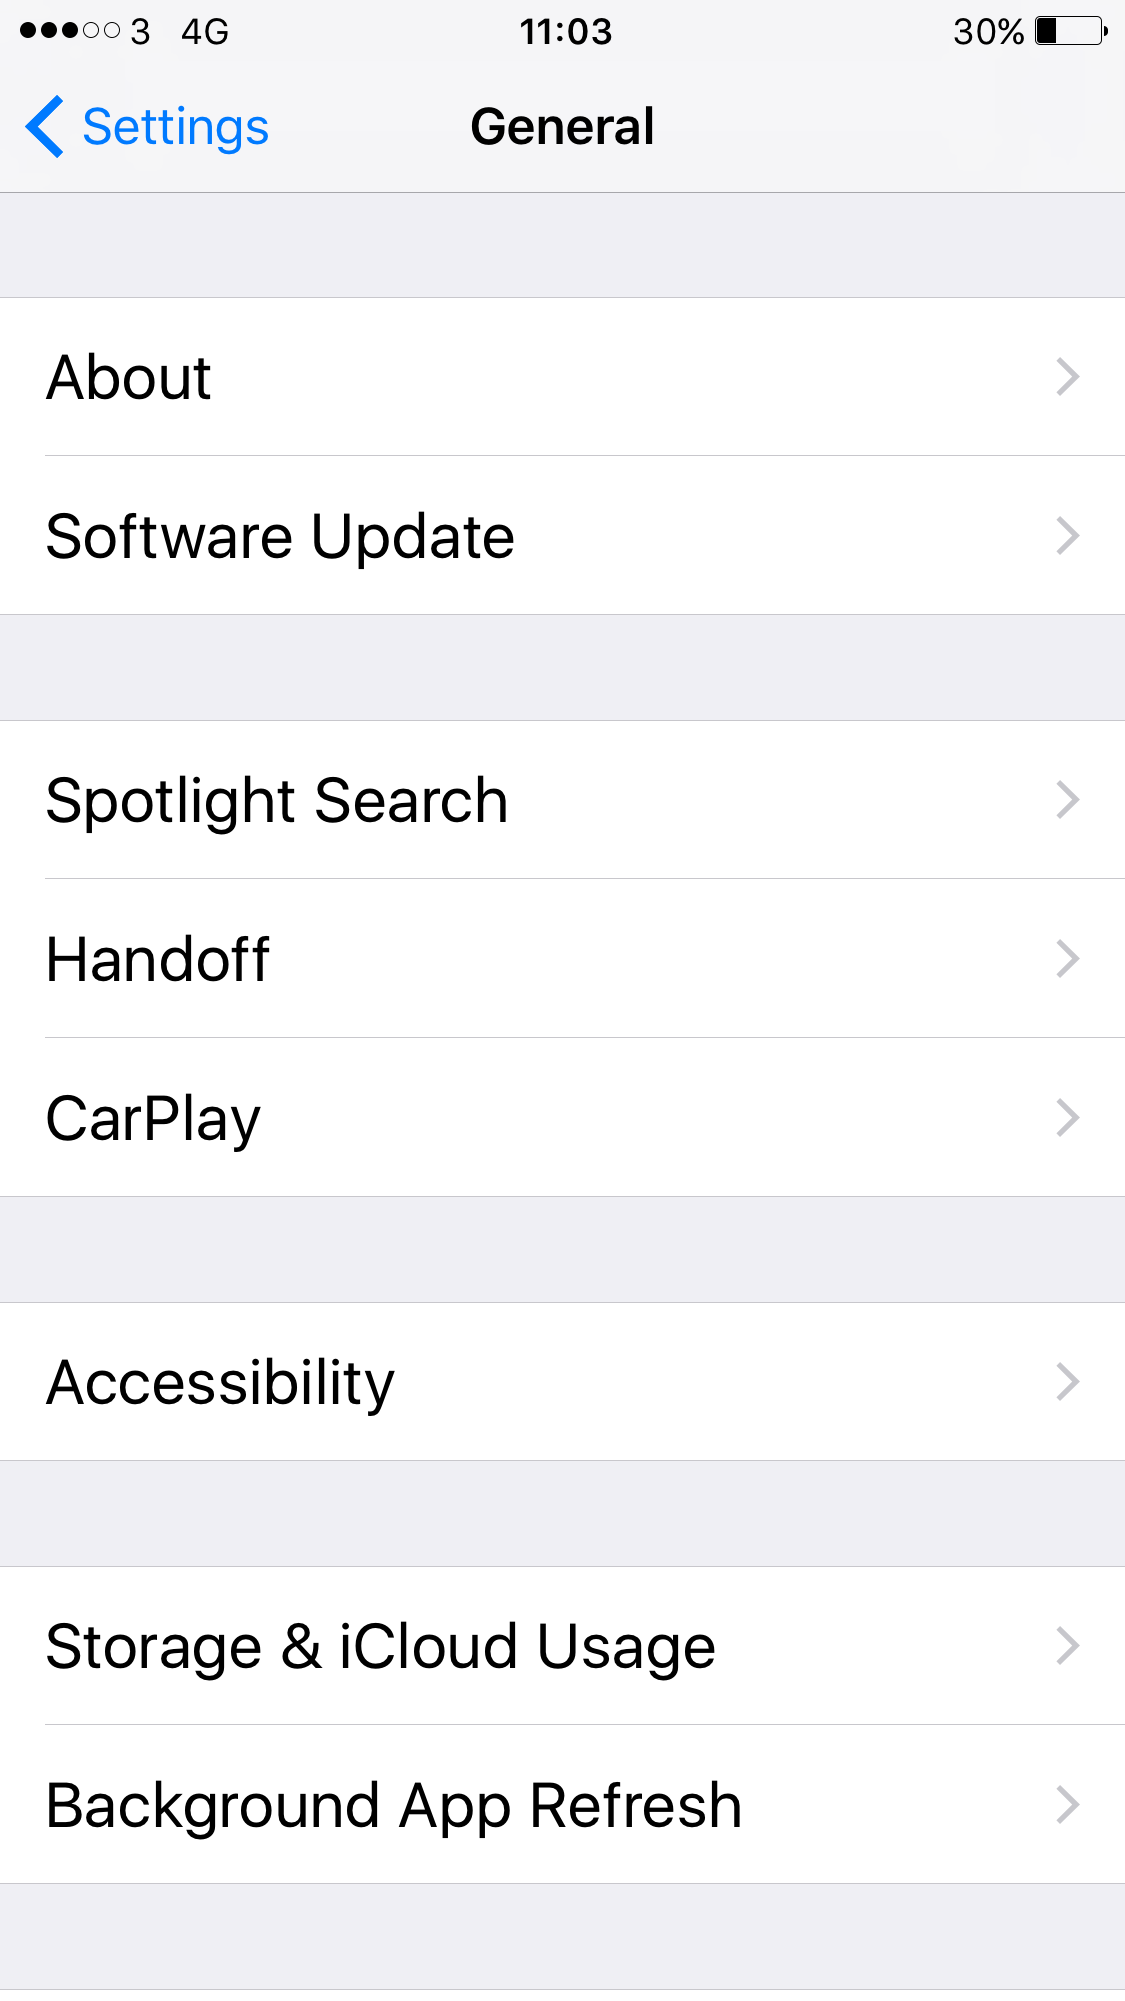 Screenshot of Apple General Settings showing ACcessibility menu item